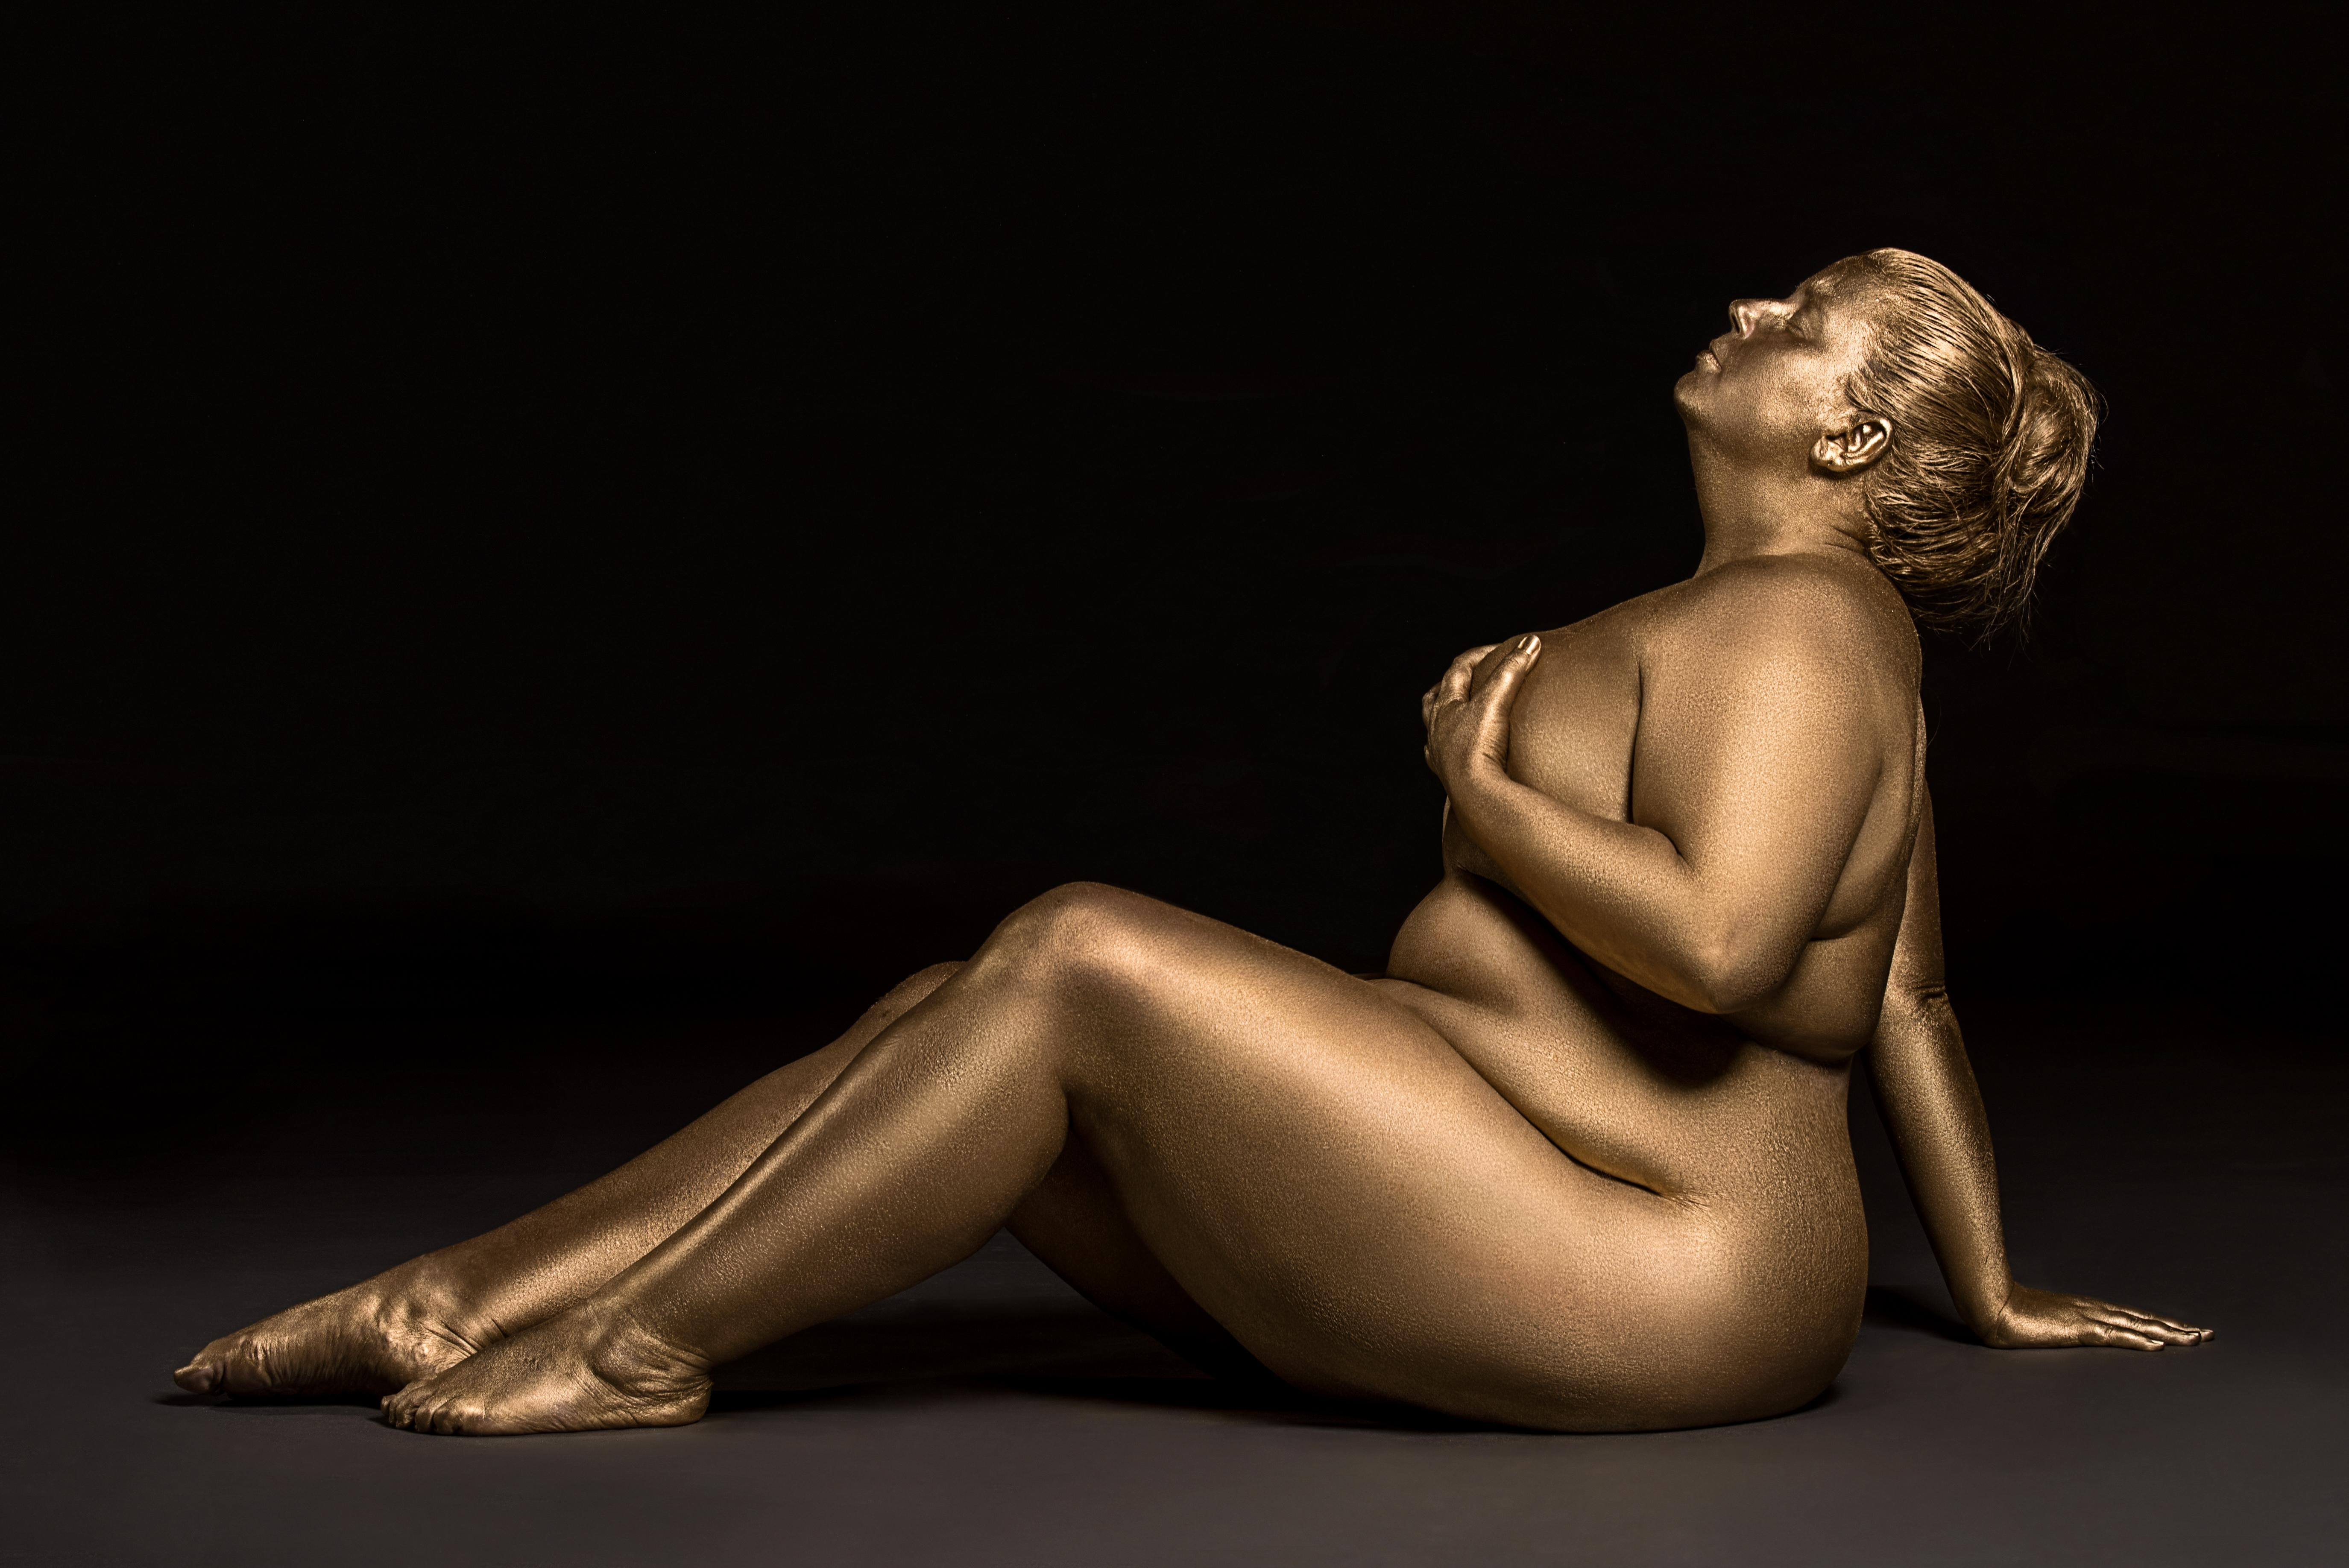 Plus size nude photography foto 325